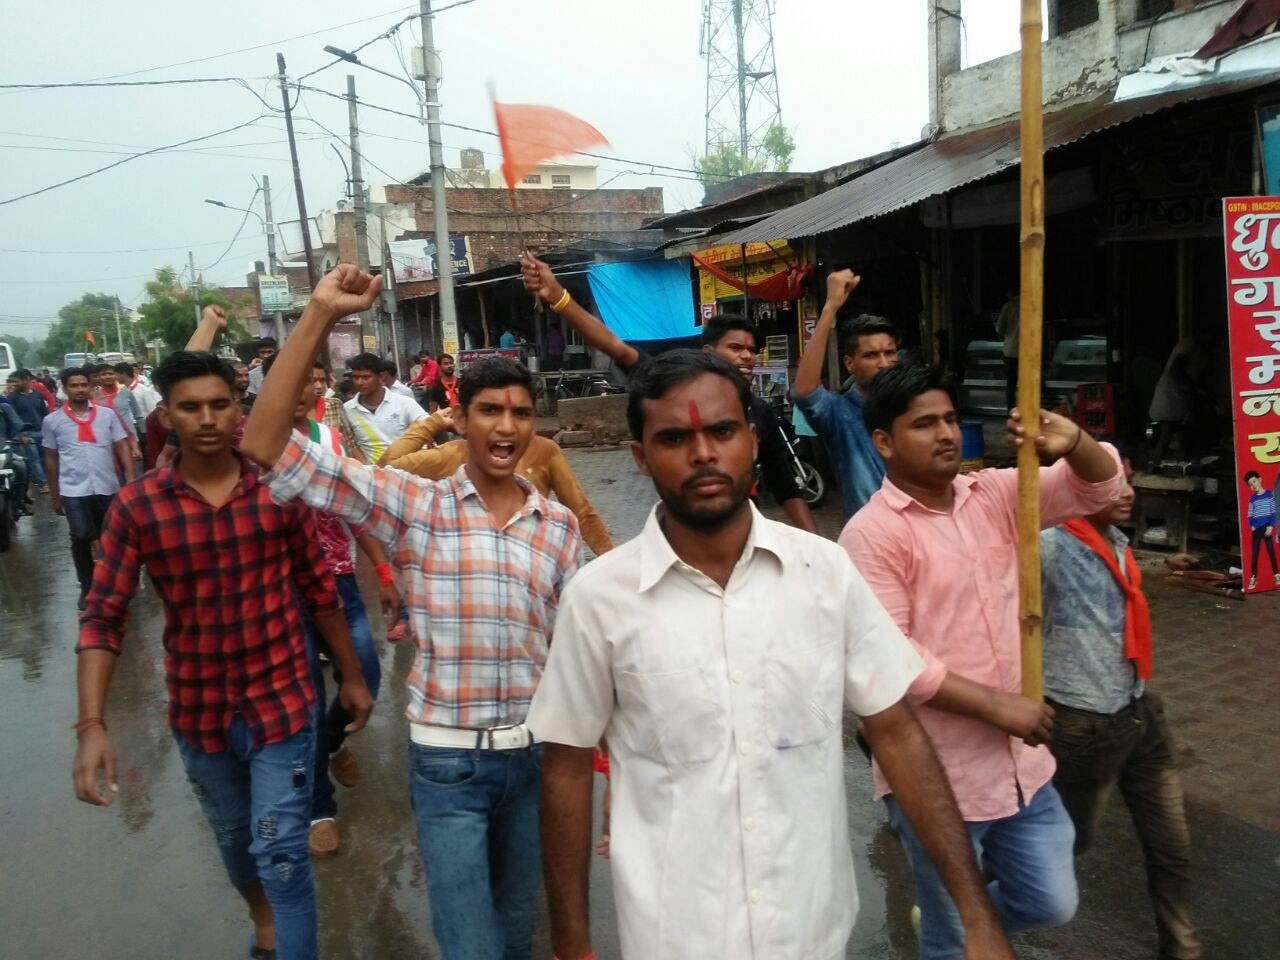 'We Don't Have Any Fear': India's Angry Young Men and Its Lynch Mob Crisis